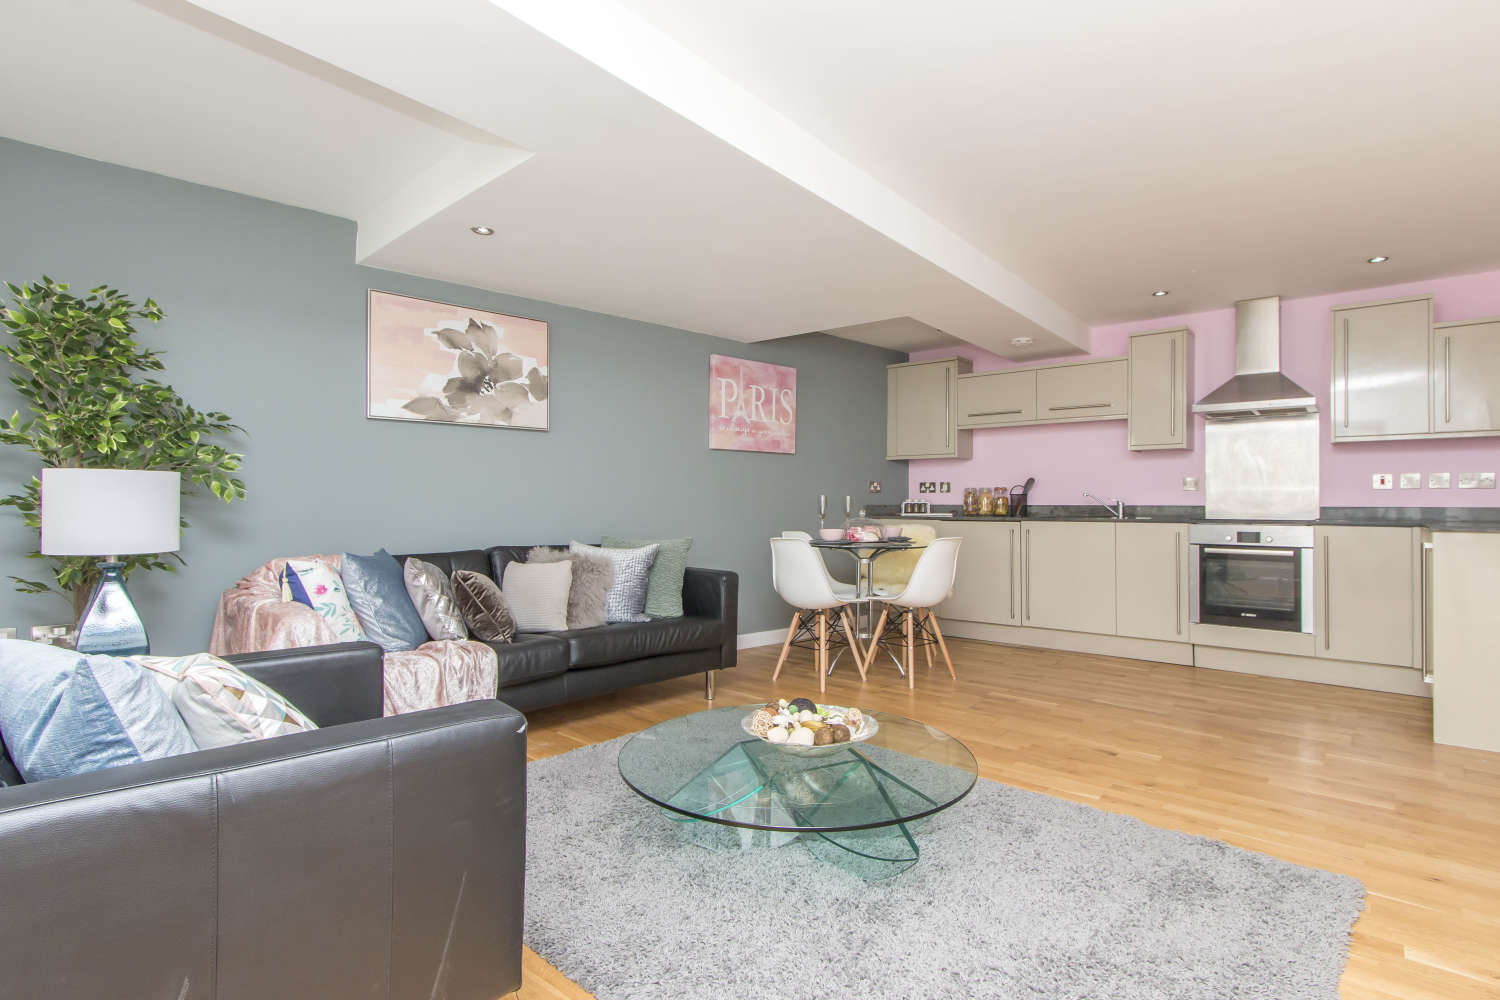 Residential use Bristol, BS1 1XY - Clare Street Apartments - 0484